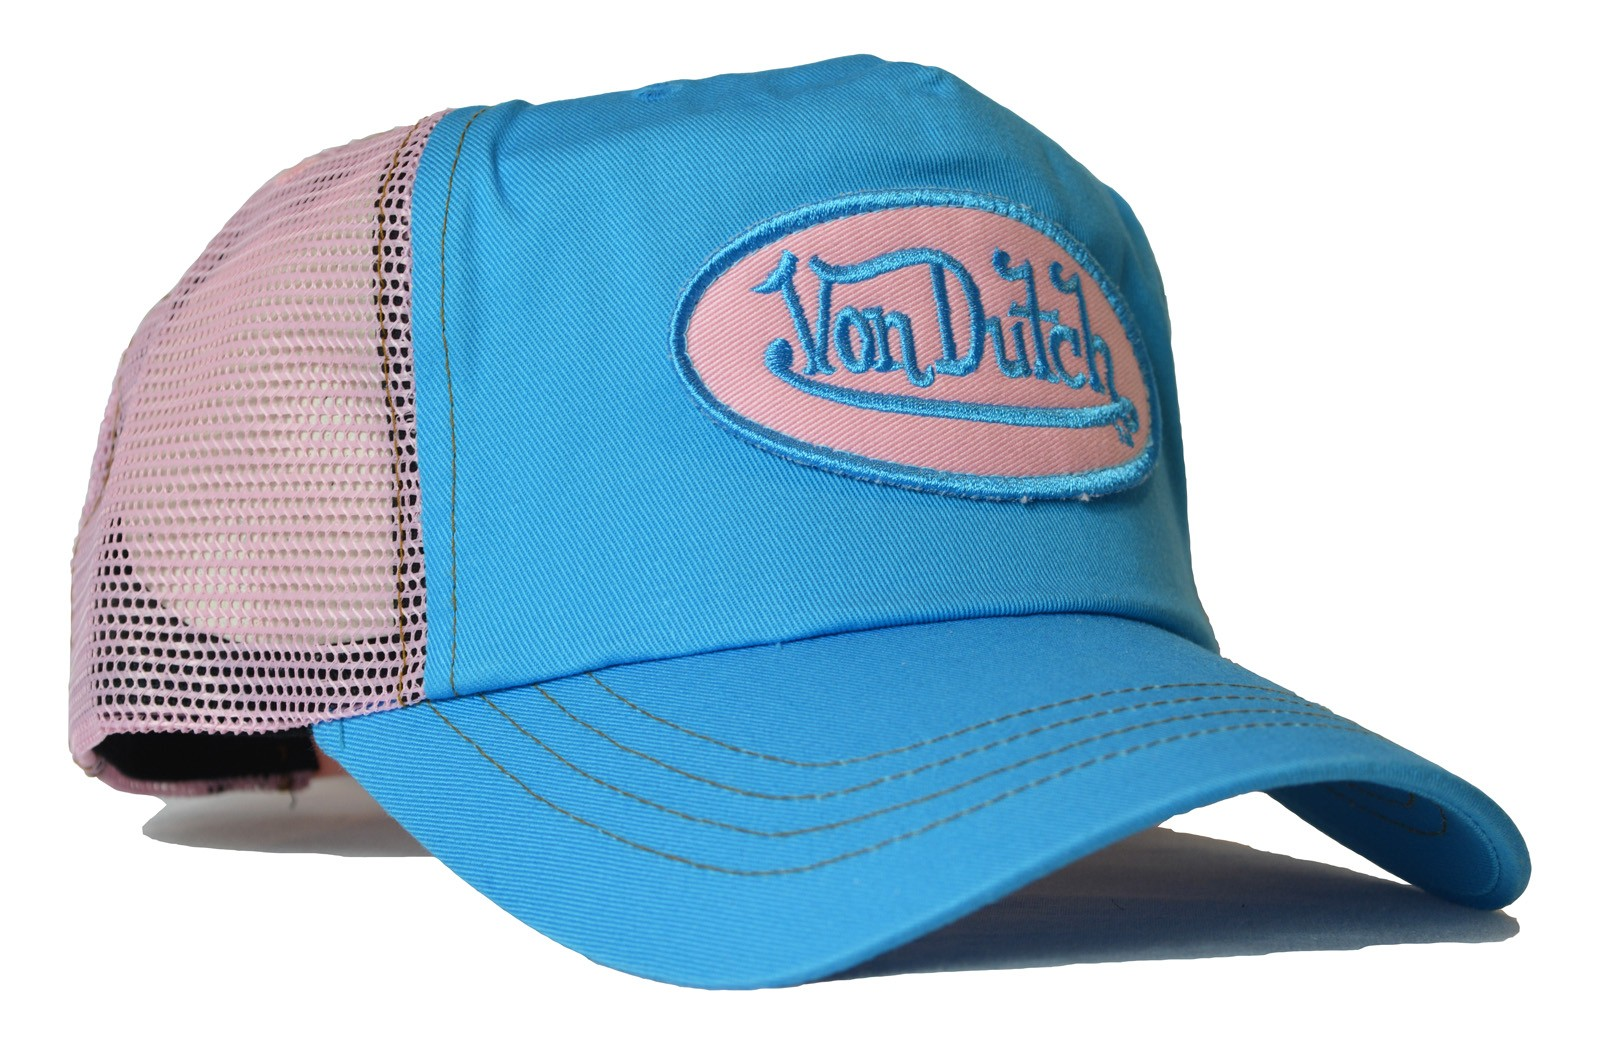 Von Dutch - Classic Blue/Pink Mesh Trucker Cap